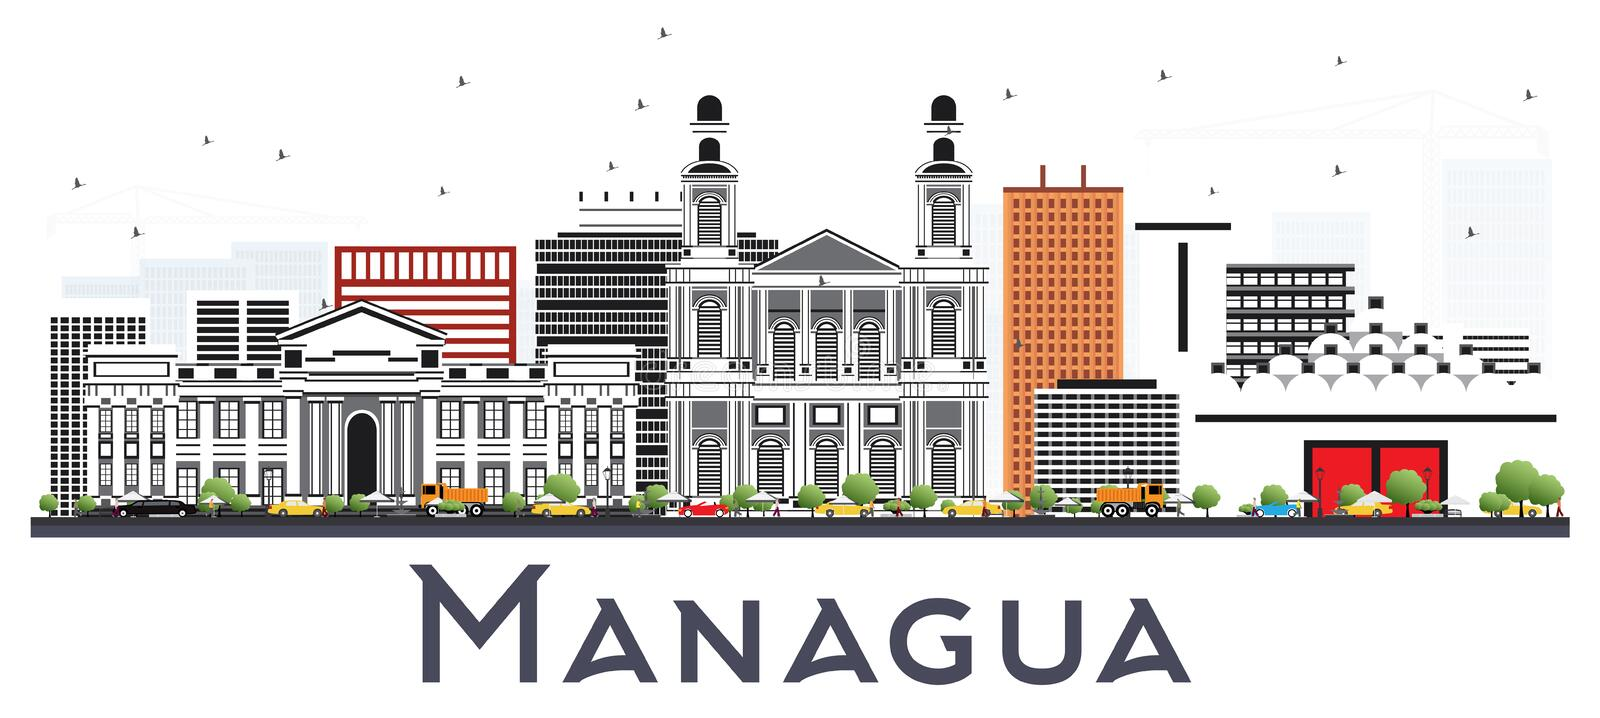 Managua Nicaragua Skyline with Gray Buildings Isolated on White. royalty free illustration